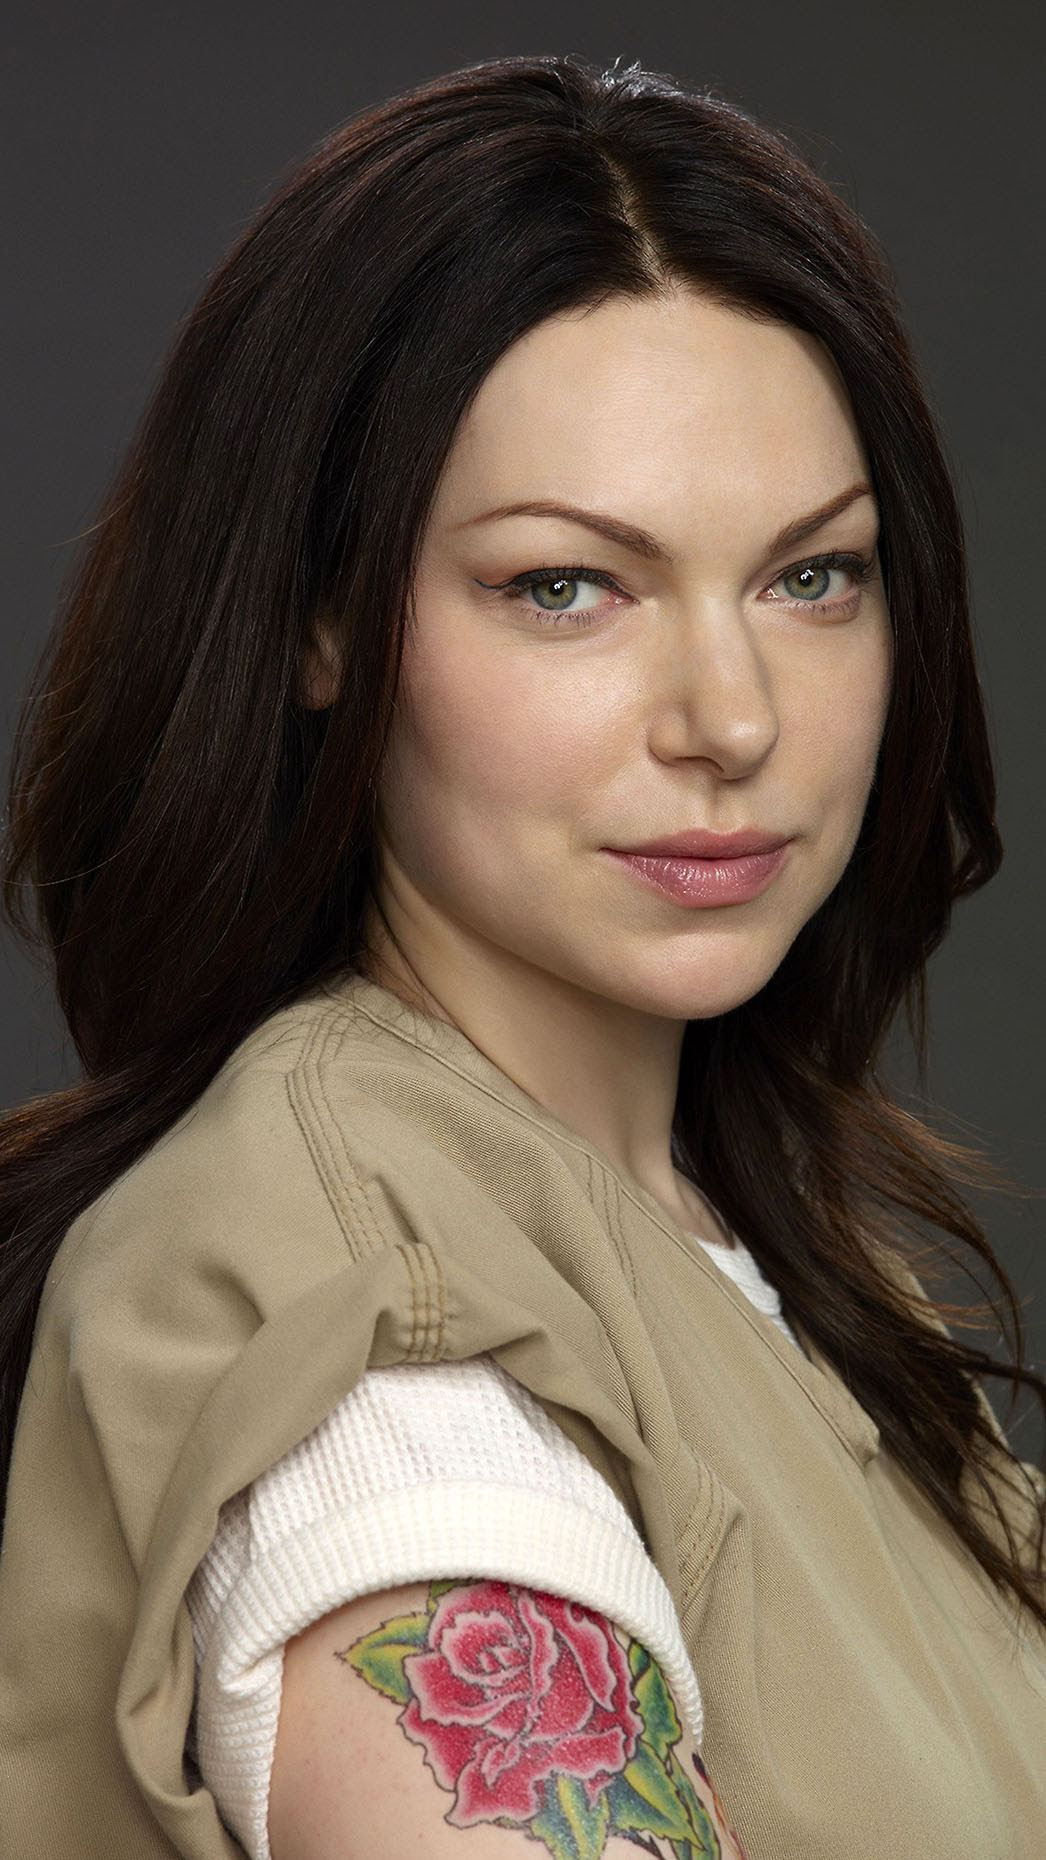 Orange Is The New Black Alex Vause Wallpaper For Iphone 11 Pro